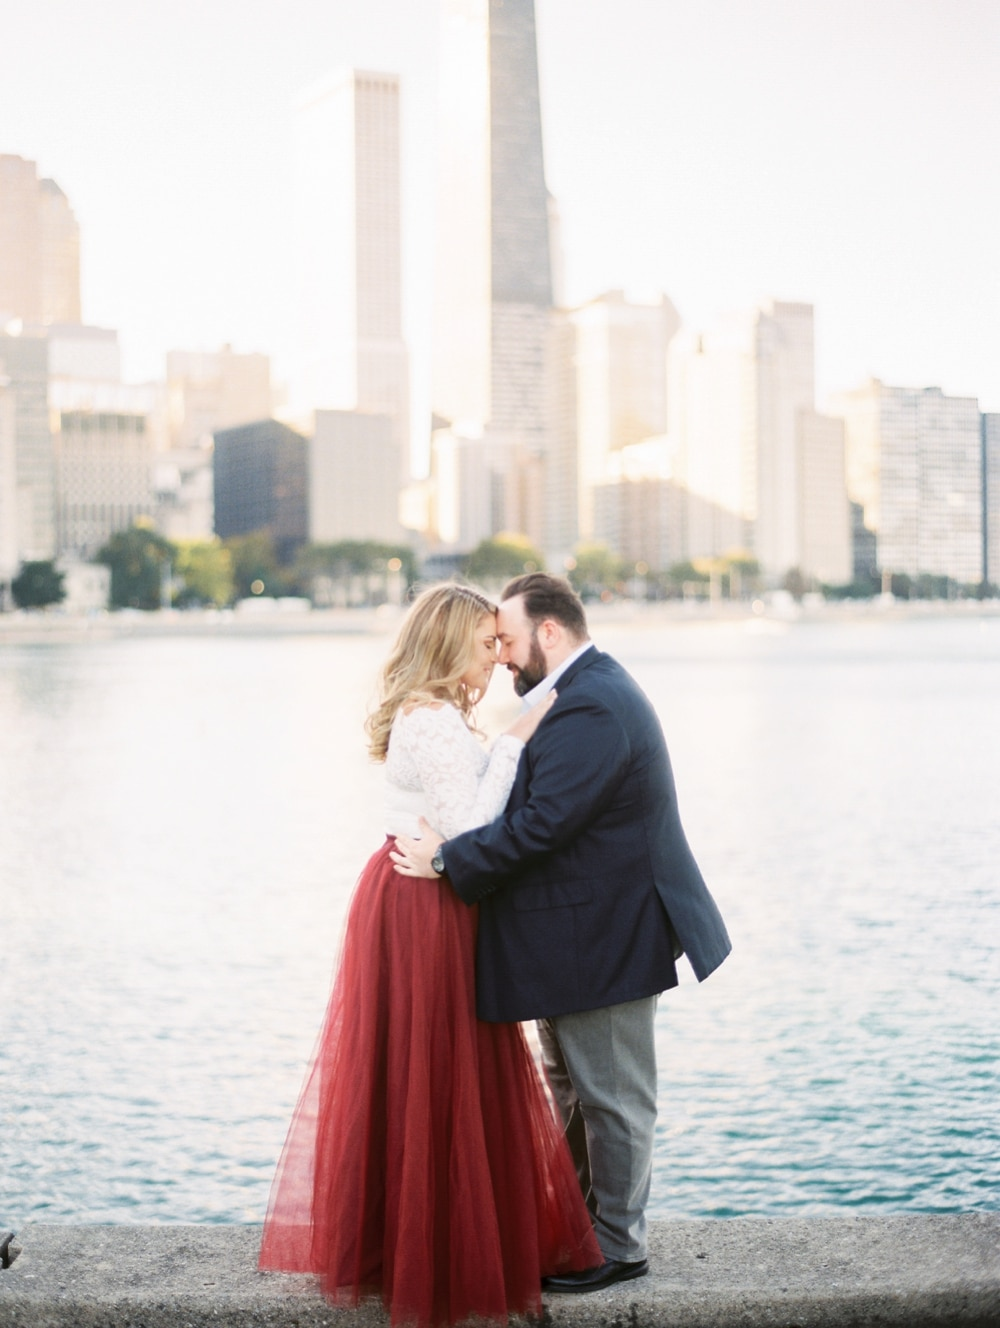 kristin-la-voie-photography-chicago-wedding-photographer-olive-park-60